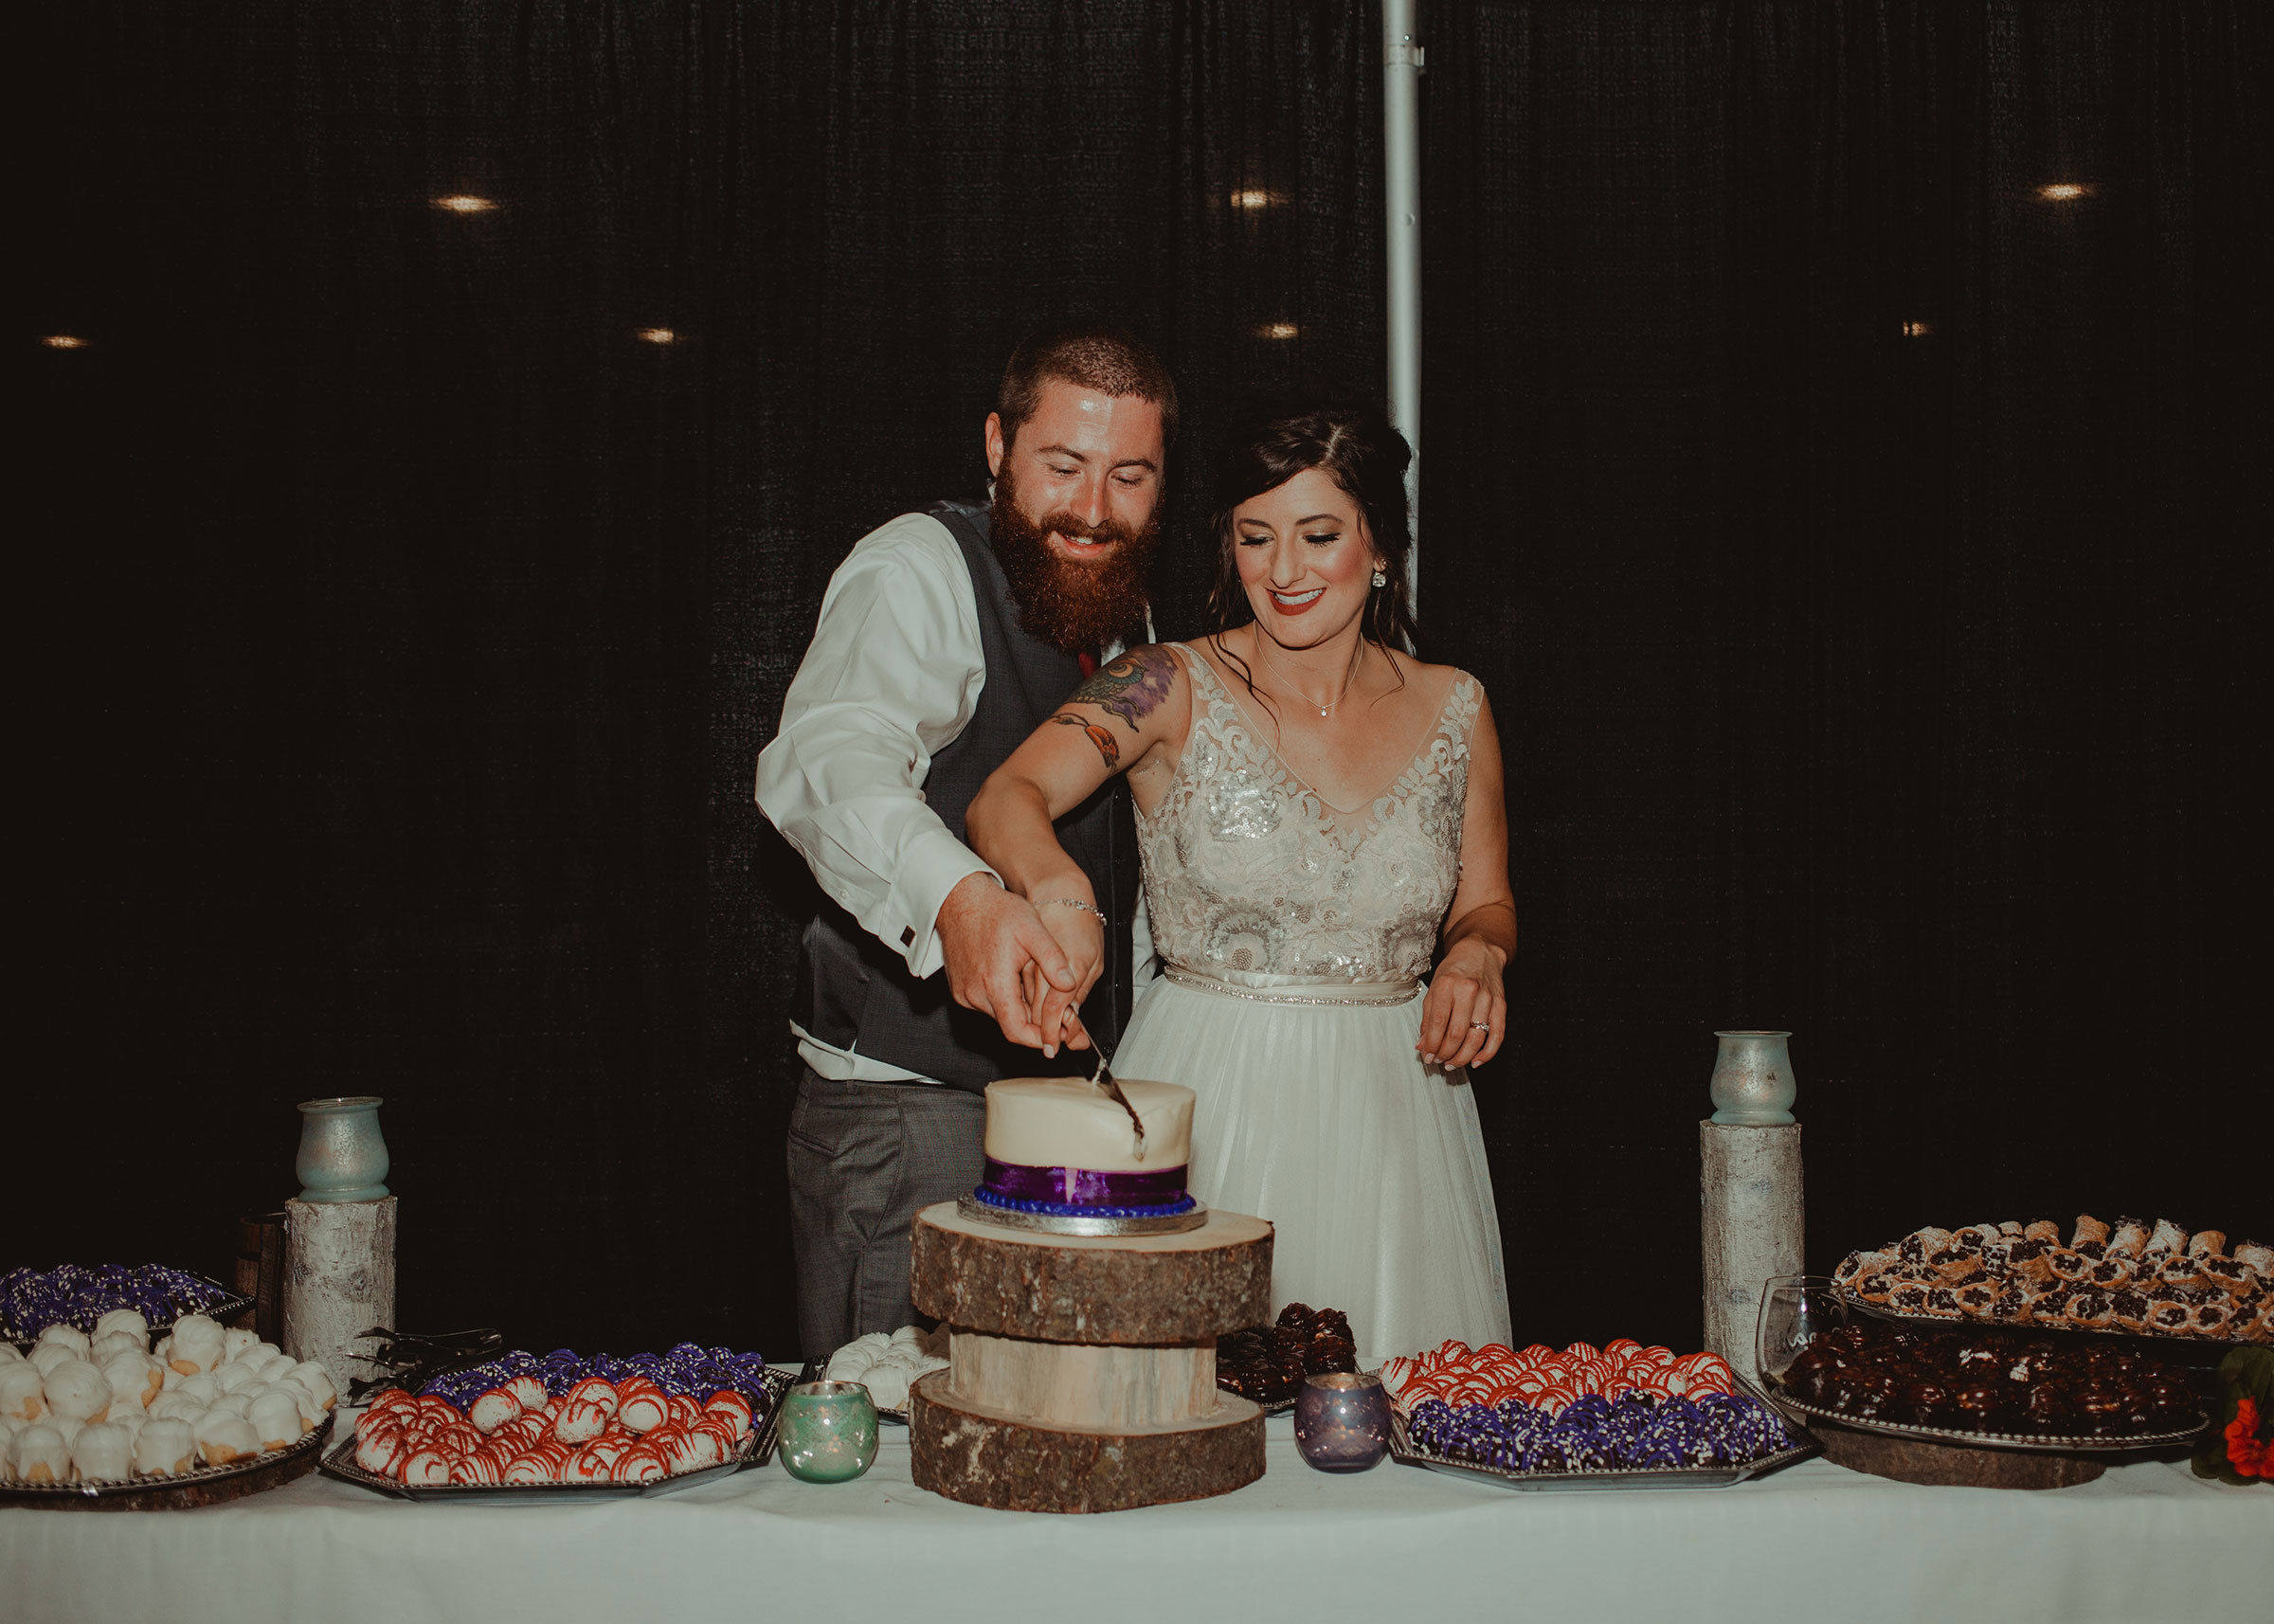 bride-groom-cutting-cake-pella-plaza-desmoines-iowa-raelyn-ramey-photography.jpg